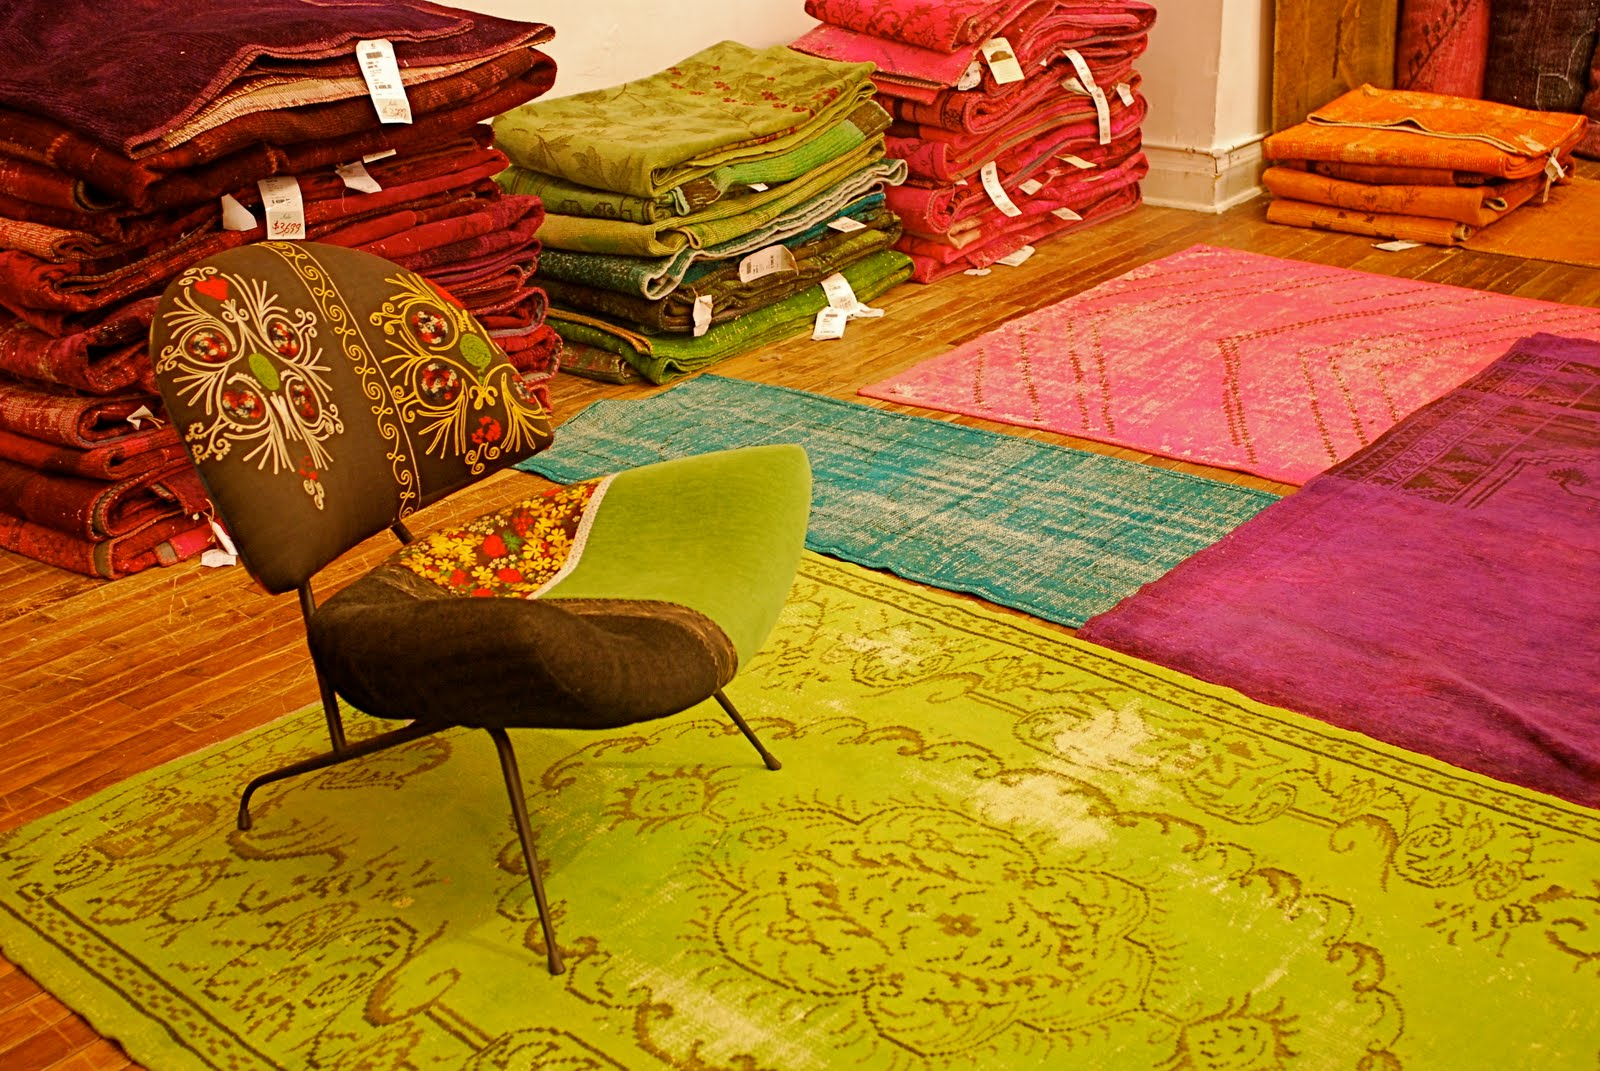 avenue abc brooklyn and opens outlet park sunset rug in city home rugs life industry carpet